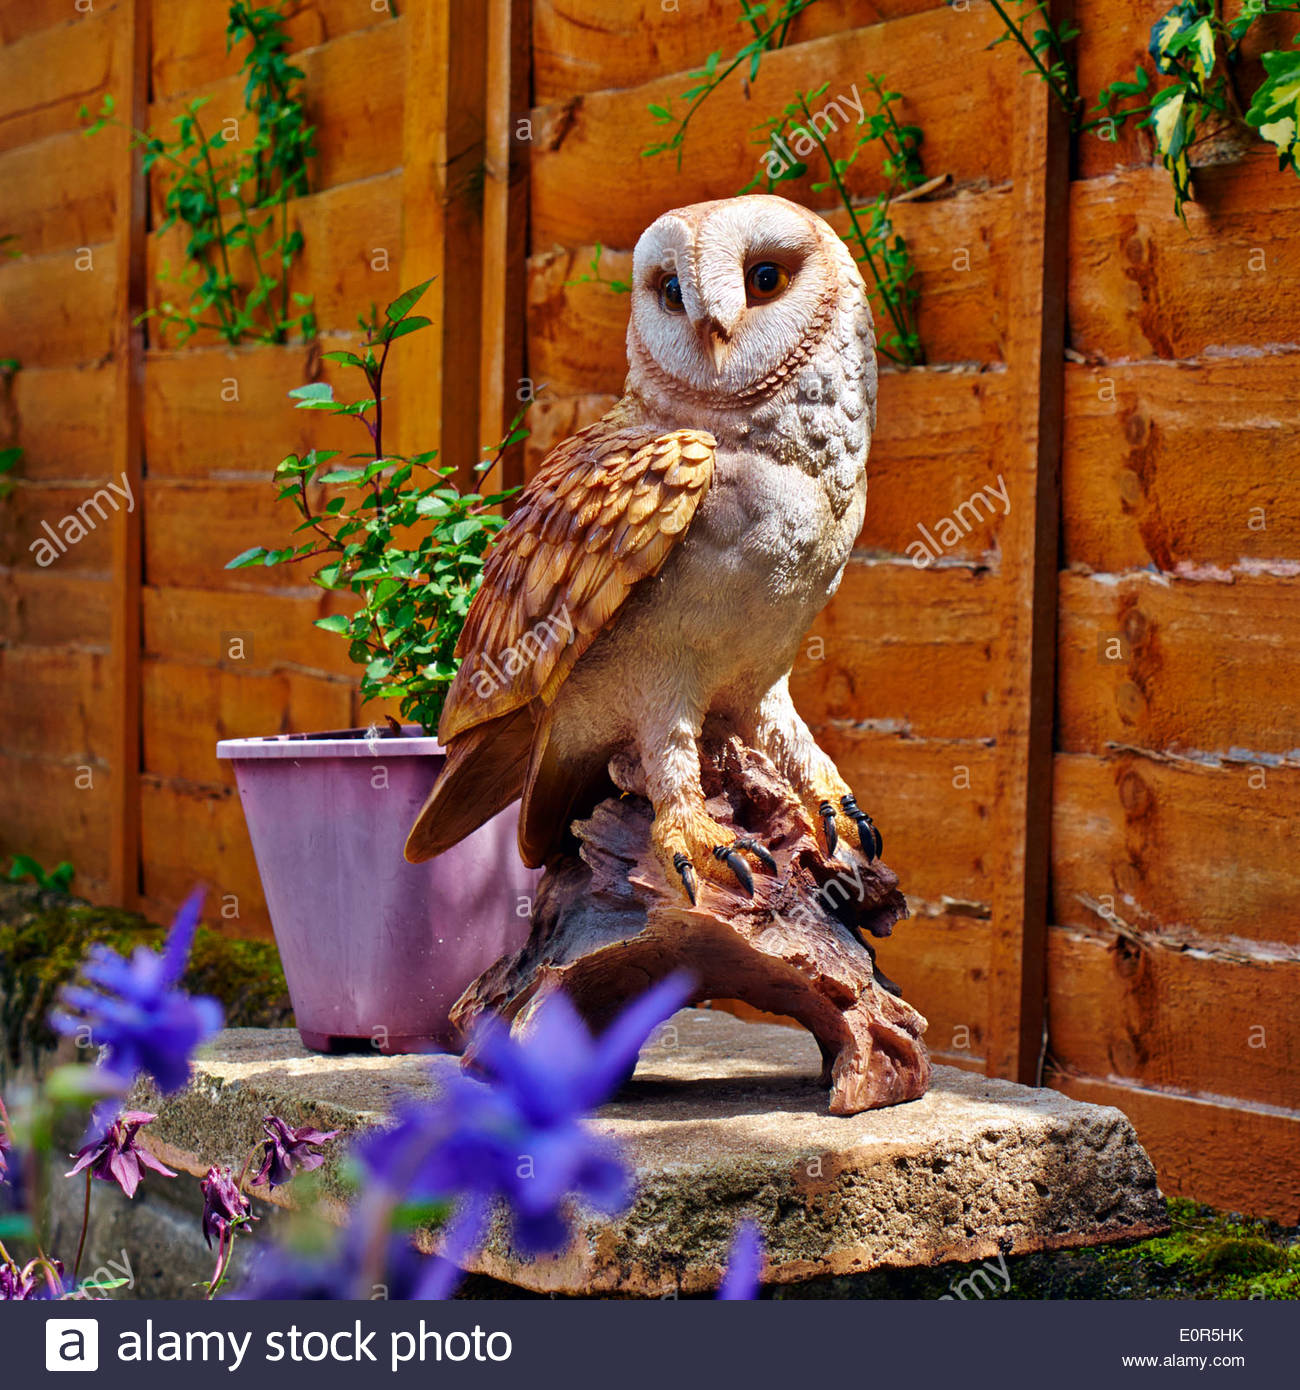 Ornamental owls for garden - Stock Photo Imitation Barn Owl Garden Ornament With A Miniature Rose In A Pink Container